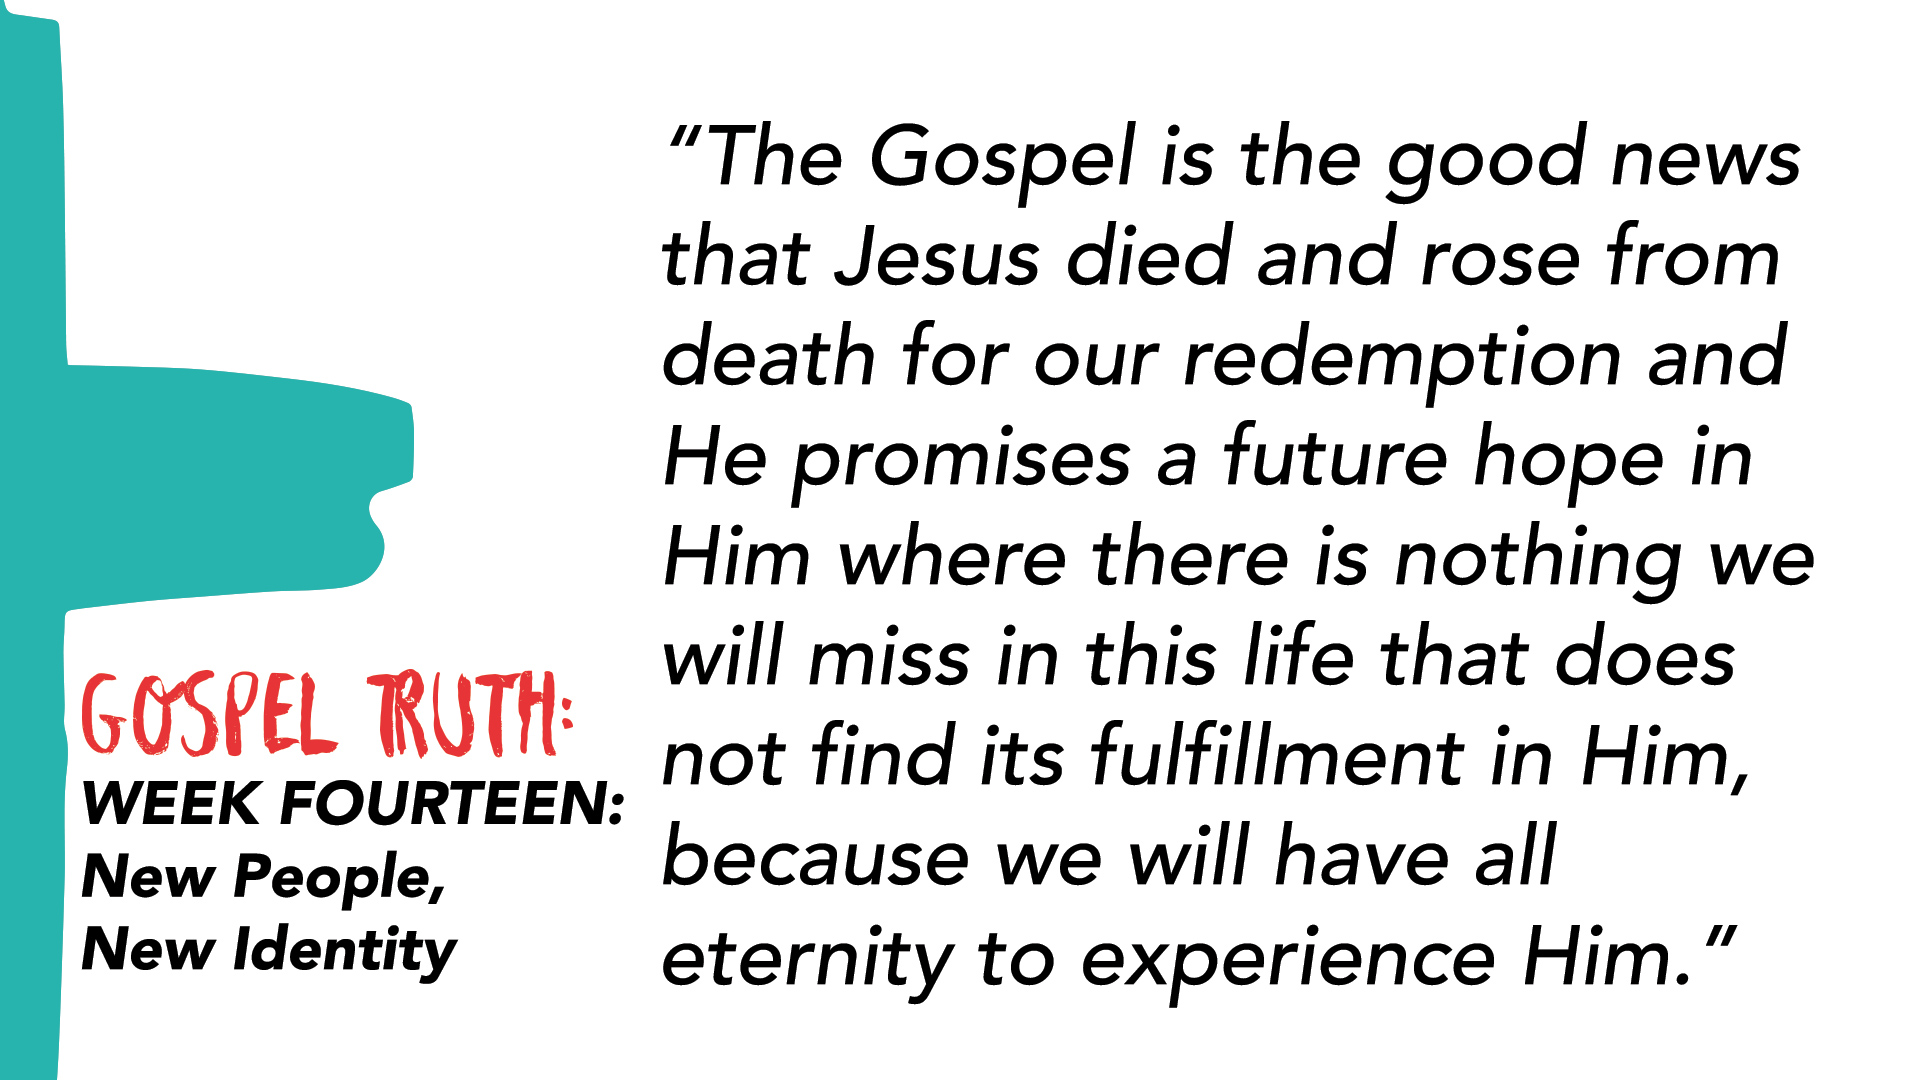 """The Gospel is the good news that Jesus died and rose from death for our redemption and He promises a future hope in Him where there is nothing we will miss in this life that does not find its fulfillment in Him, because we will have all eternity to experience Him."""